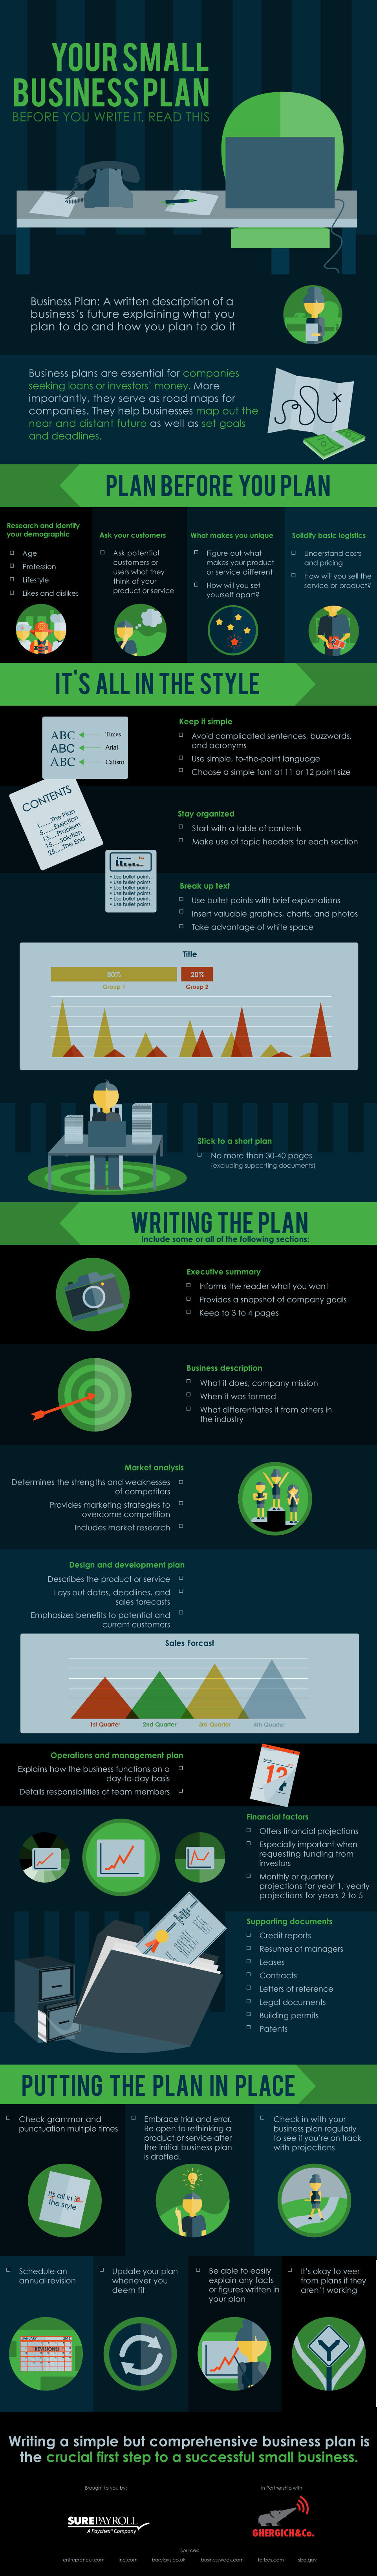 Business plan checklist infographic